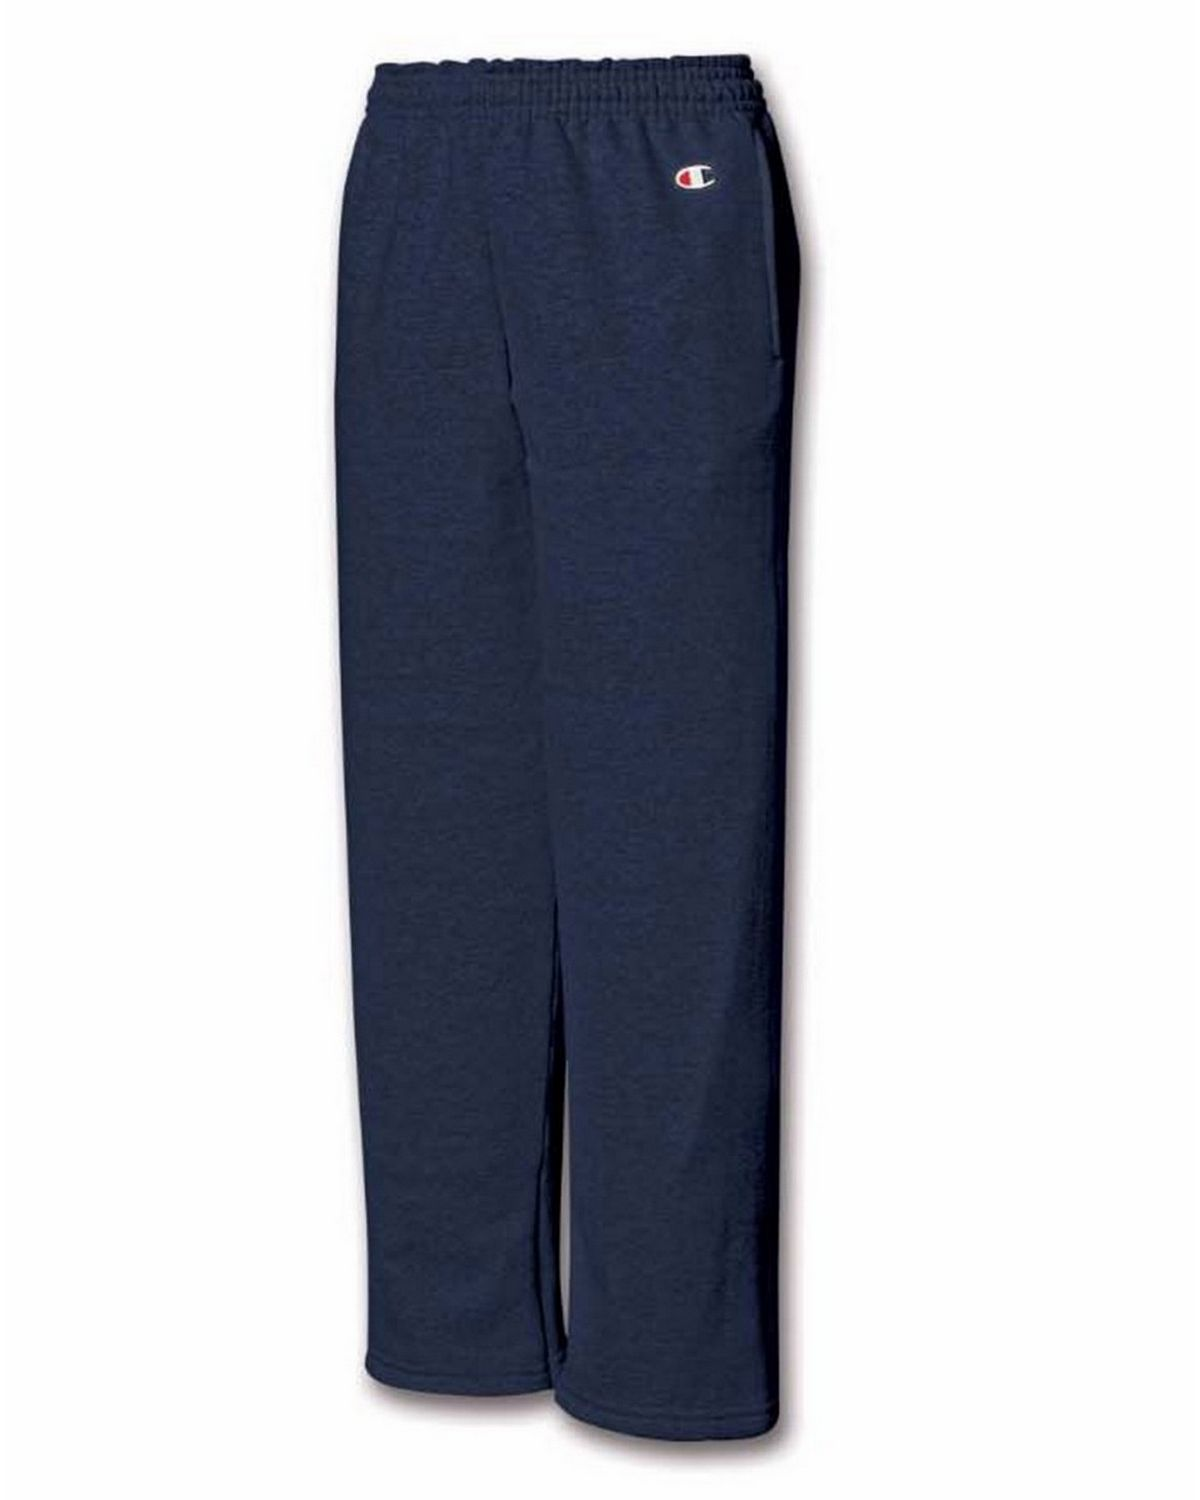 Champion P890 Youth Fleece Open Bottom Pant - Navy - XL P890